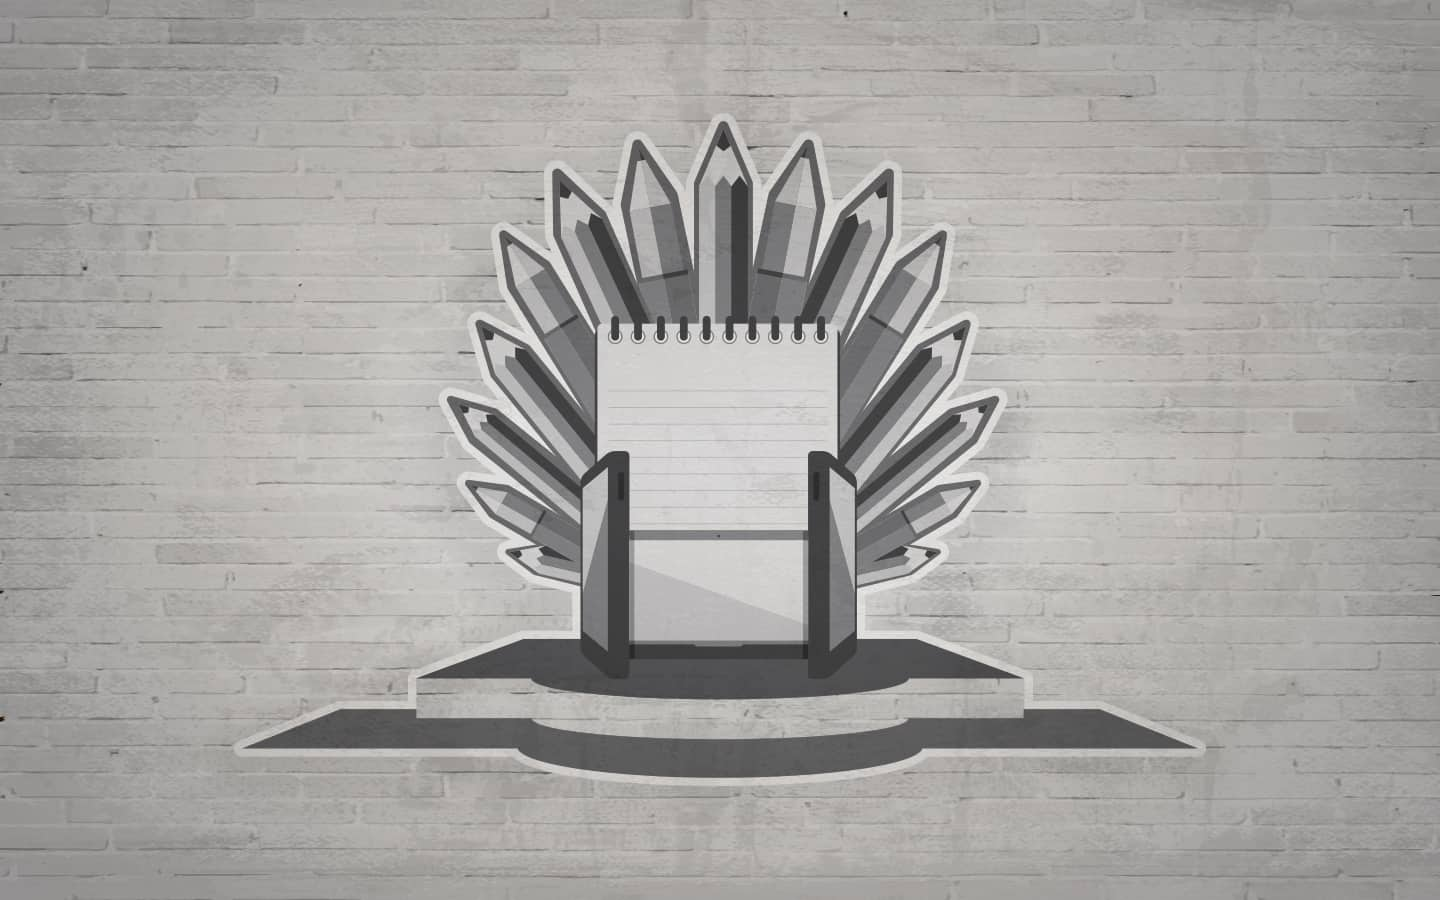 Core Brand Messaging, Game of Thrones Edition | Mekanic